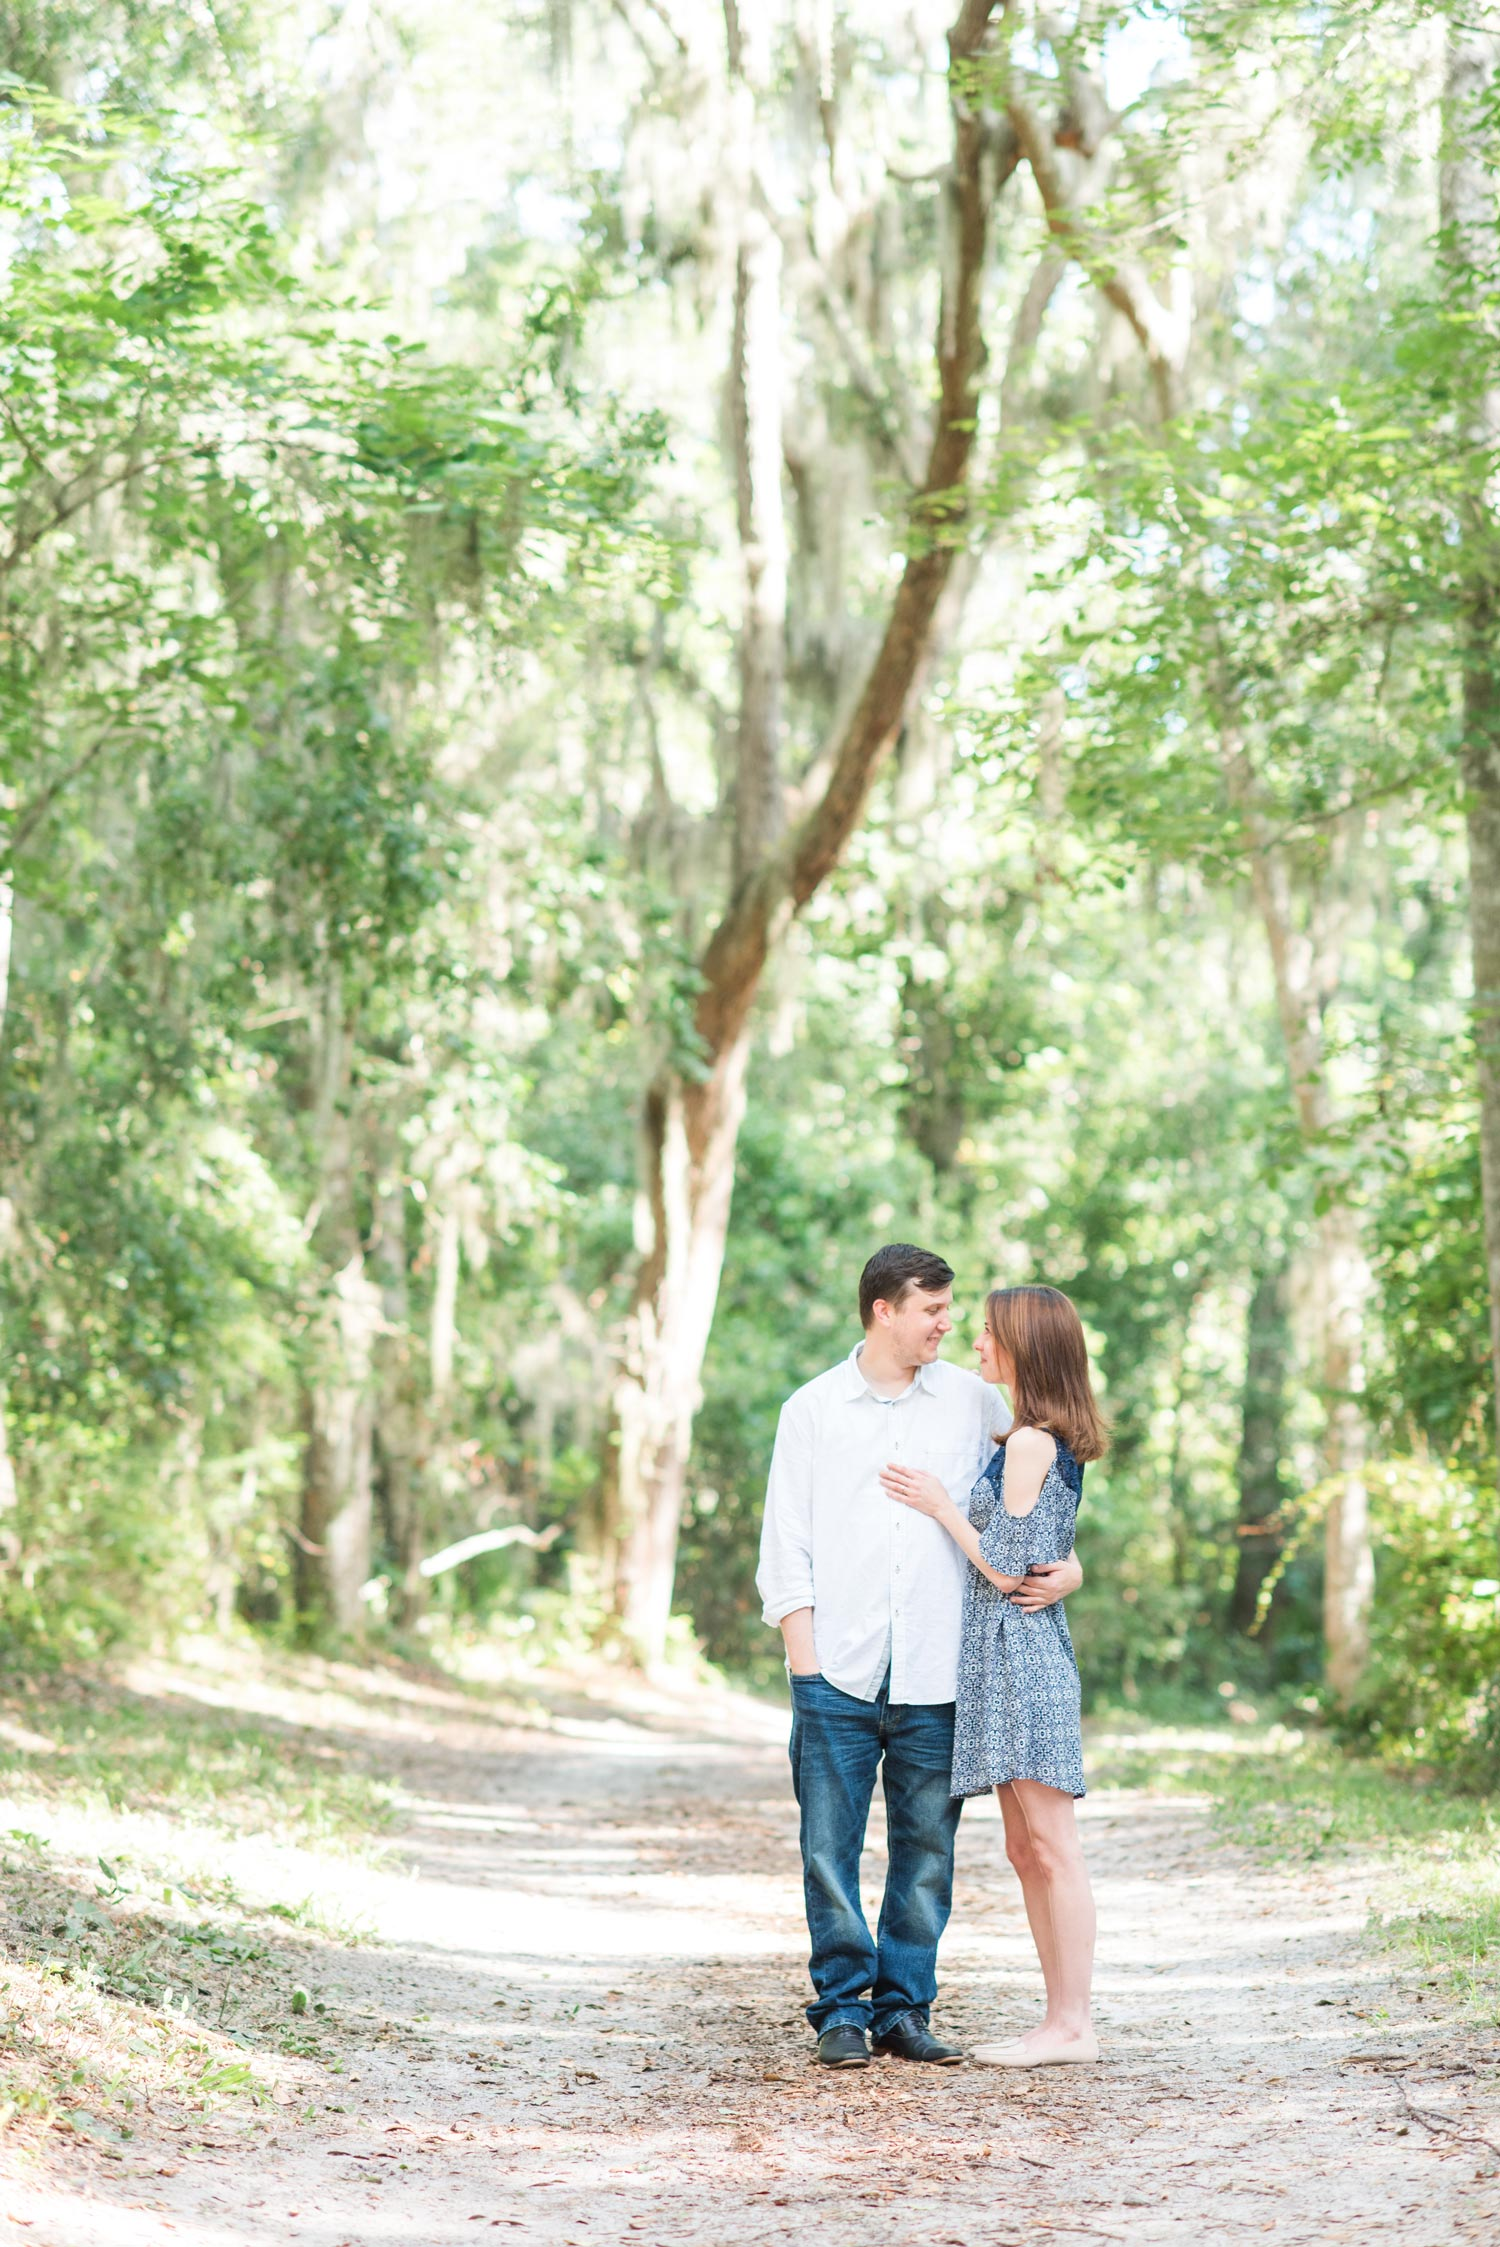 ©christineaustinphotography_Engagement_02.jpg